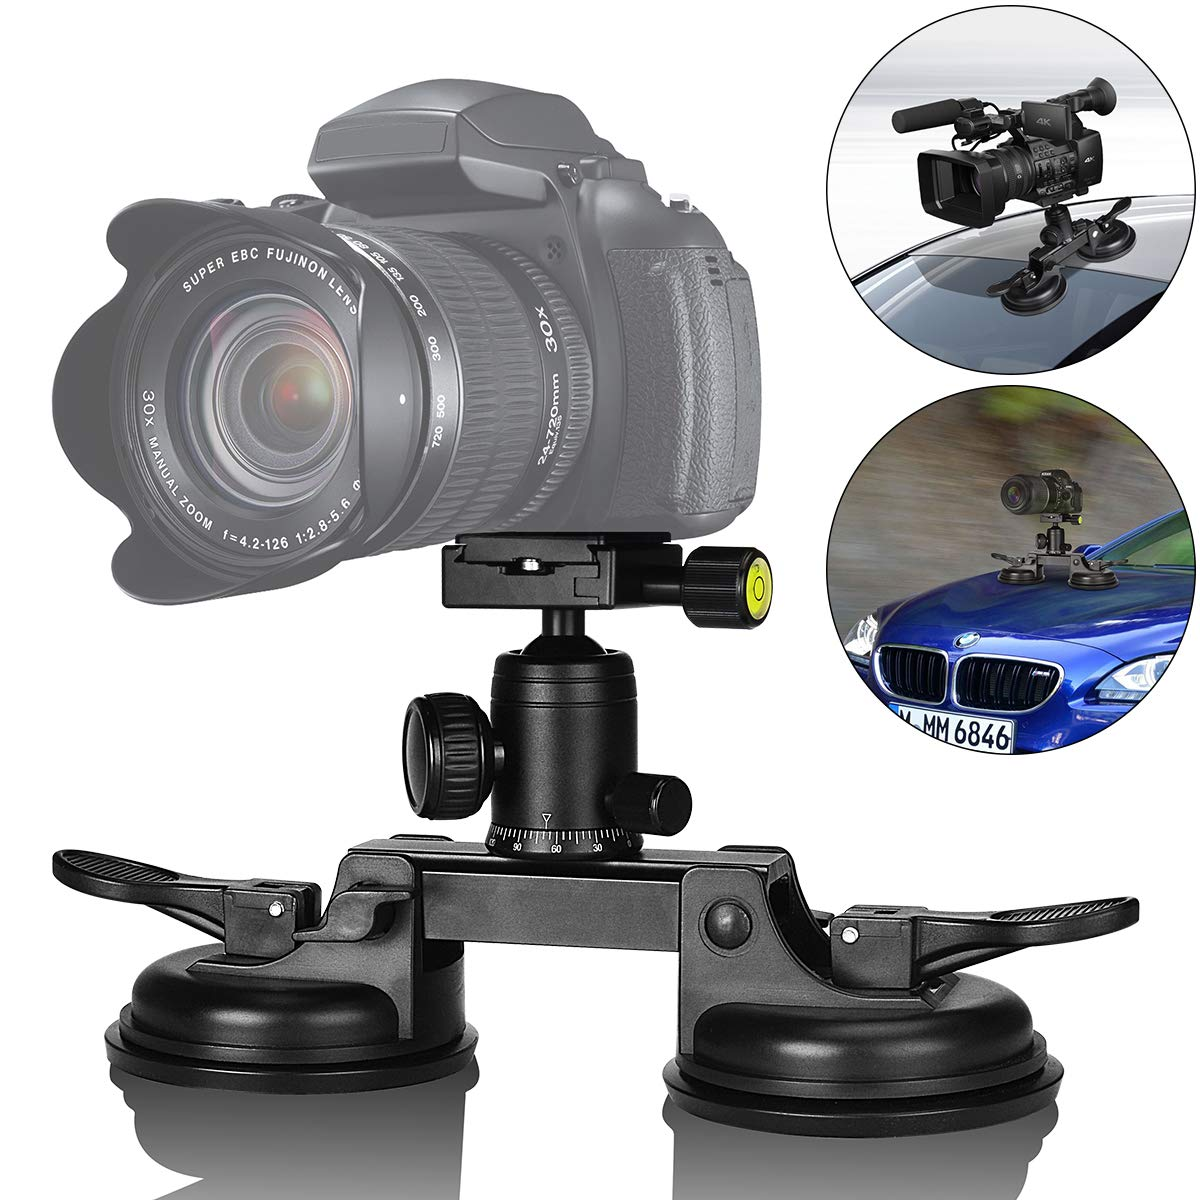 Heavy Duty DSLR/Mirorrless Camera Suction Cup Car Mount Professional Camcorder Vehicle Holder w/Quick Release 360°Panorama Ball Head Compatible with Nikon Canon Sony for Hi-Speed Motion Photography by fantaseal